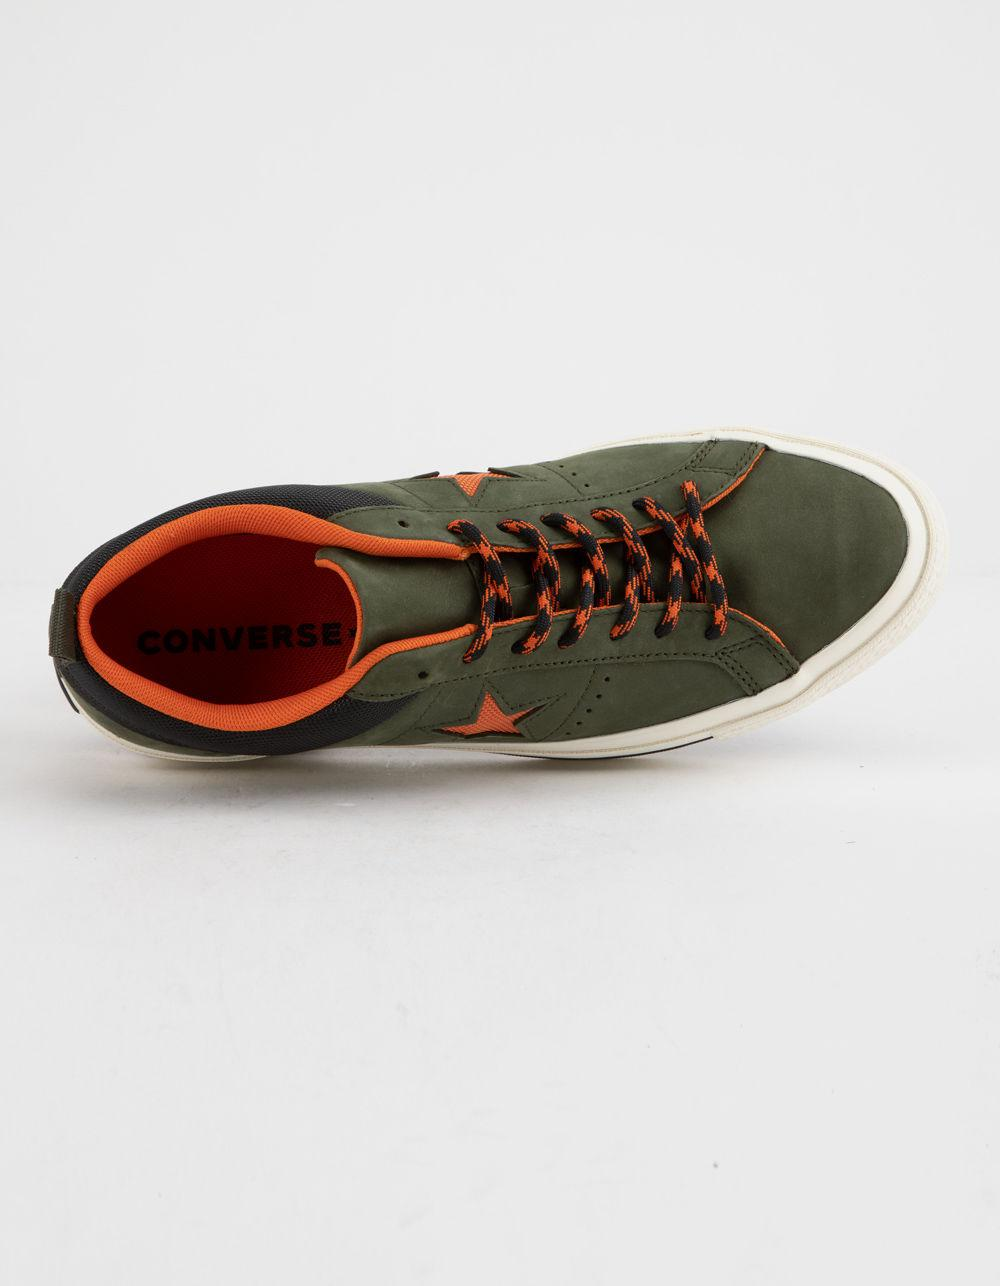 bcce8597c7e999 Converse - Green One Star Ox Sierra Low Top Shoes - Lyst. View fullscreen